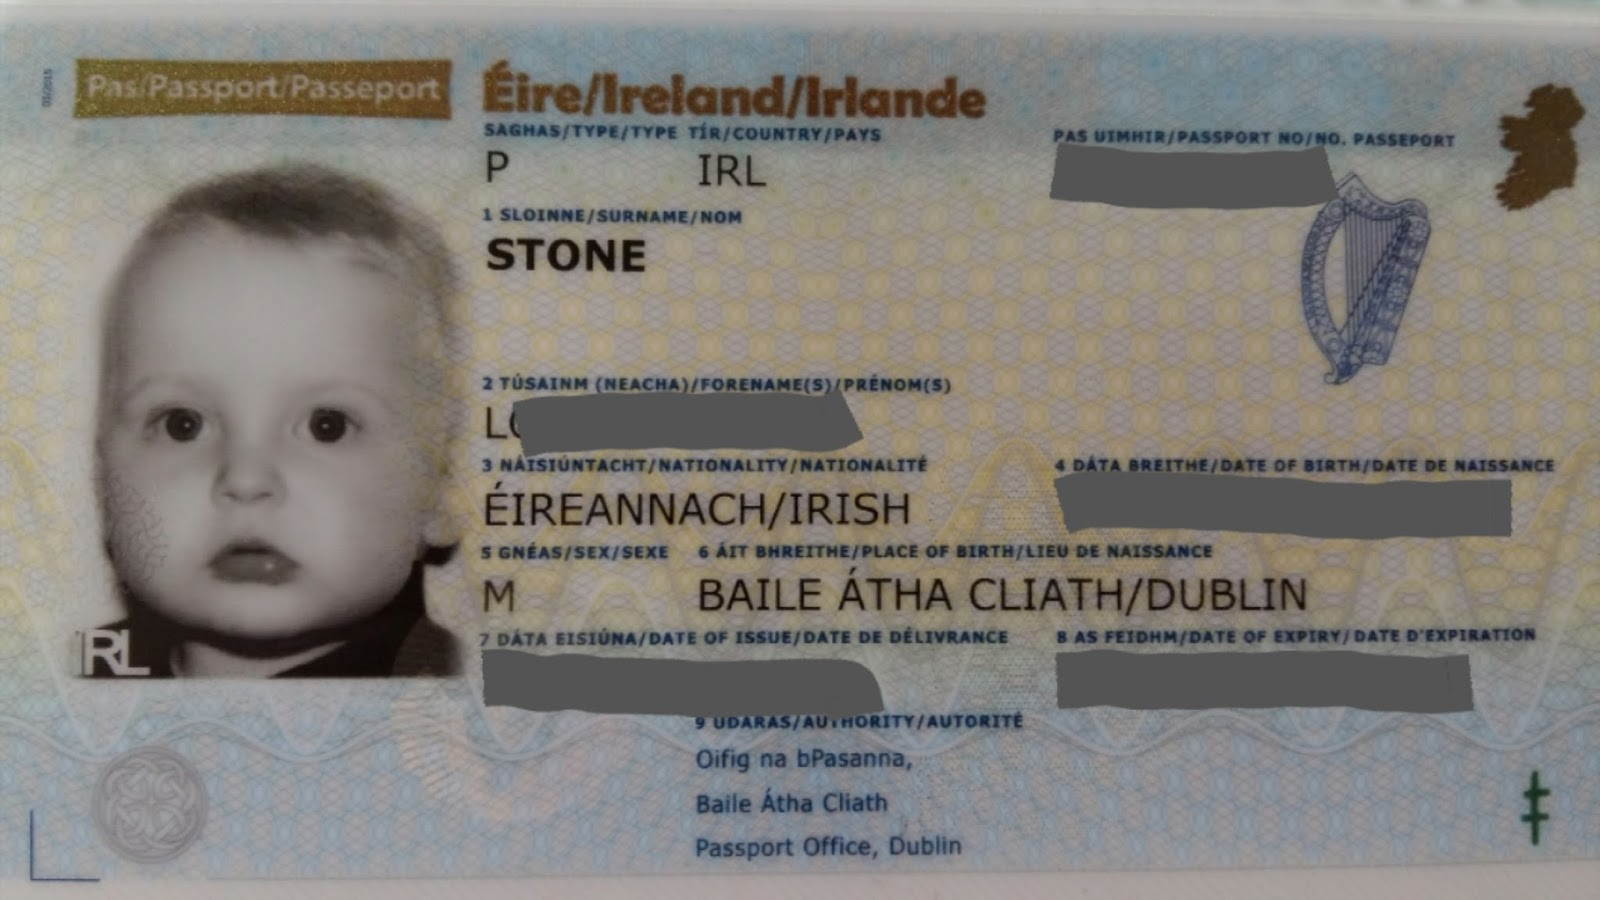 How to change surname in irish passport after marriage